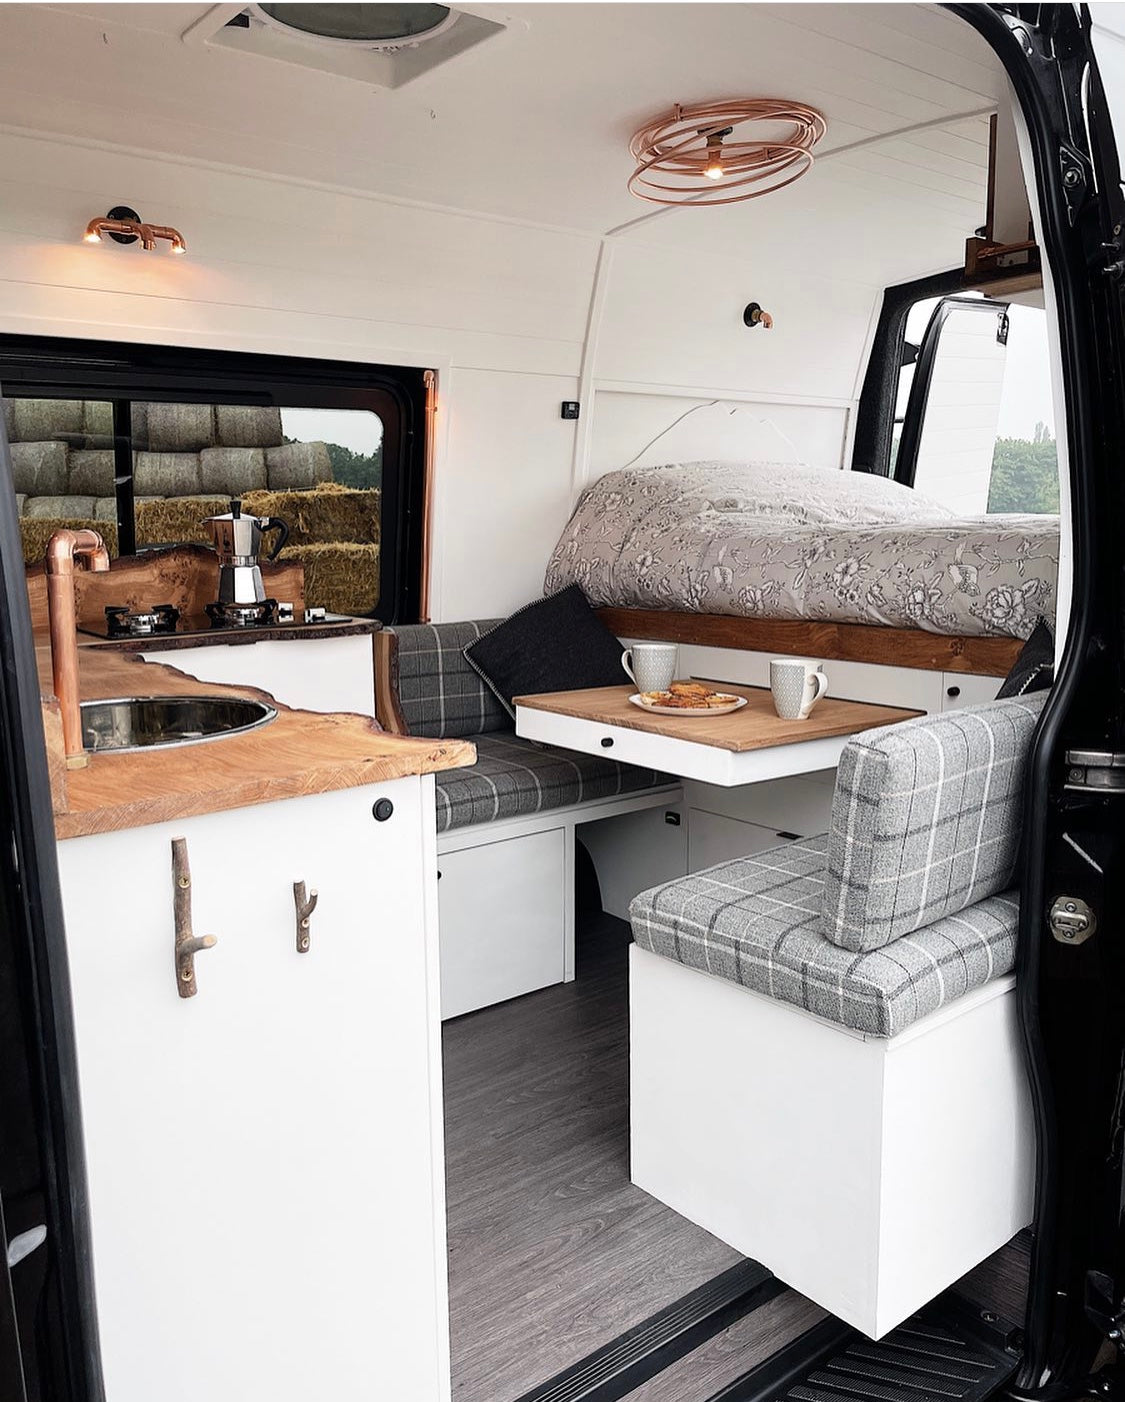 Slider out table in a campervan